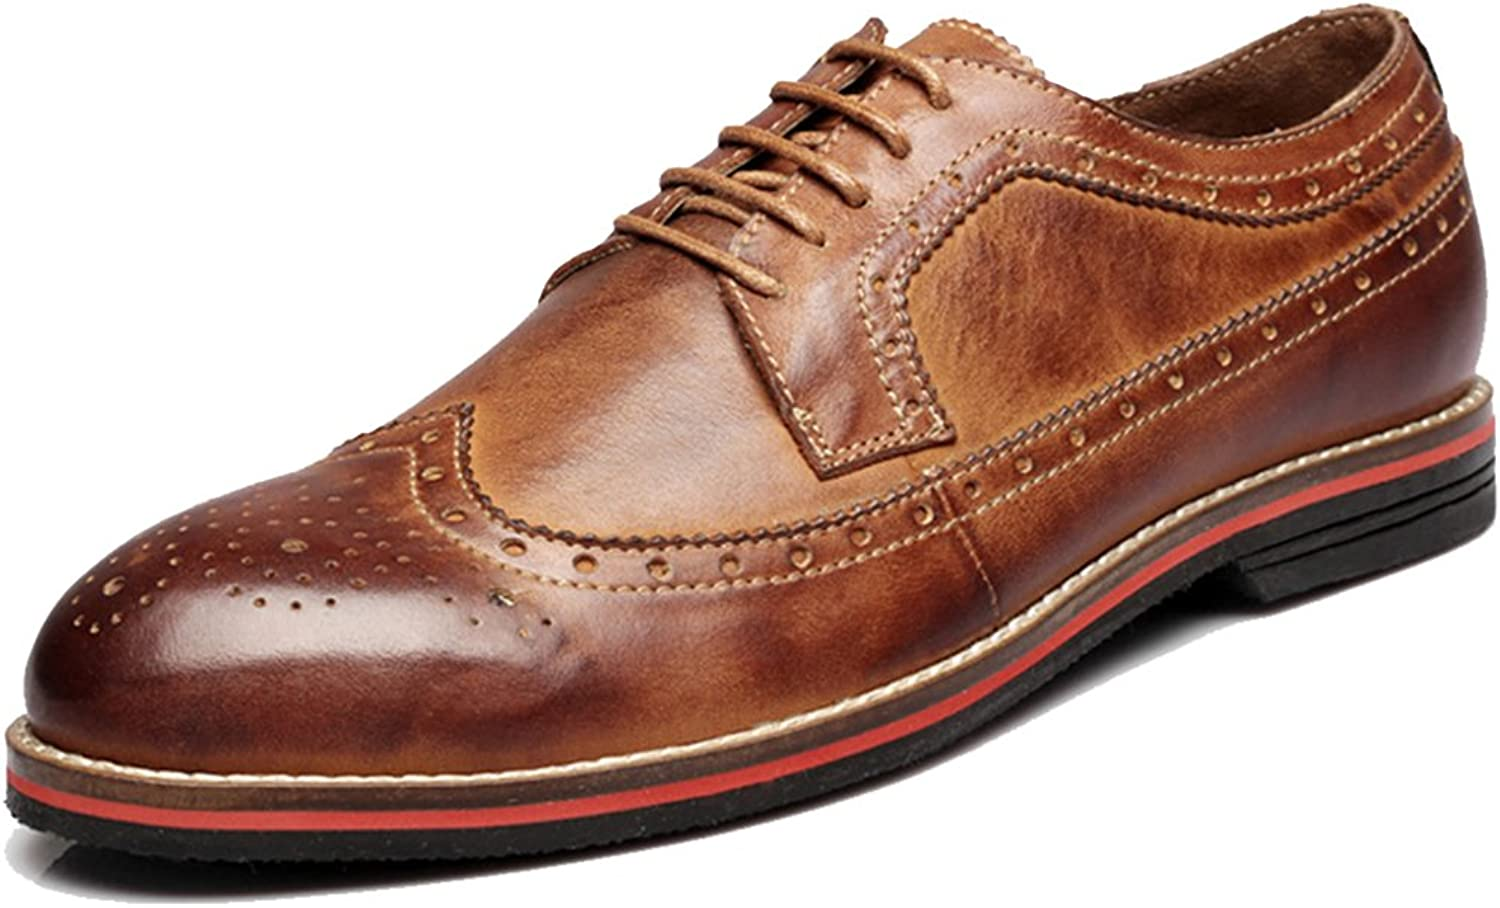 Beinfaith Men's Distressed Genuine Leather Wingtips Oxfords Lace-ups